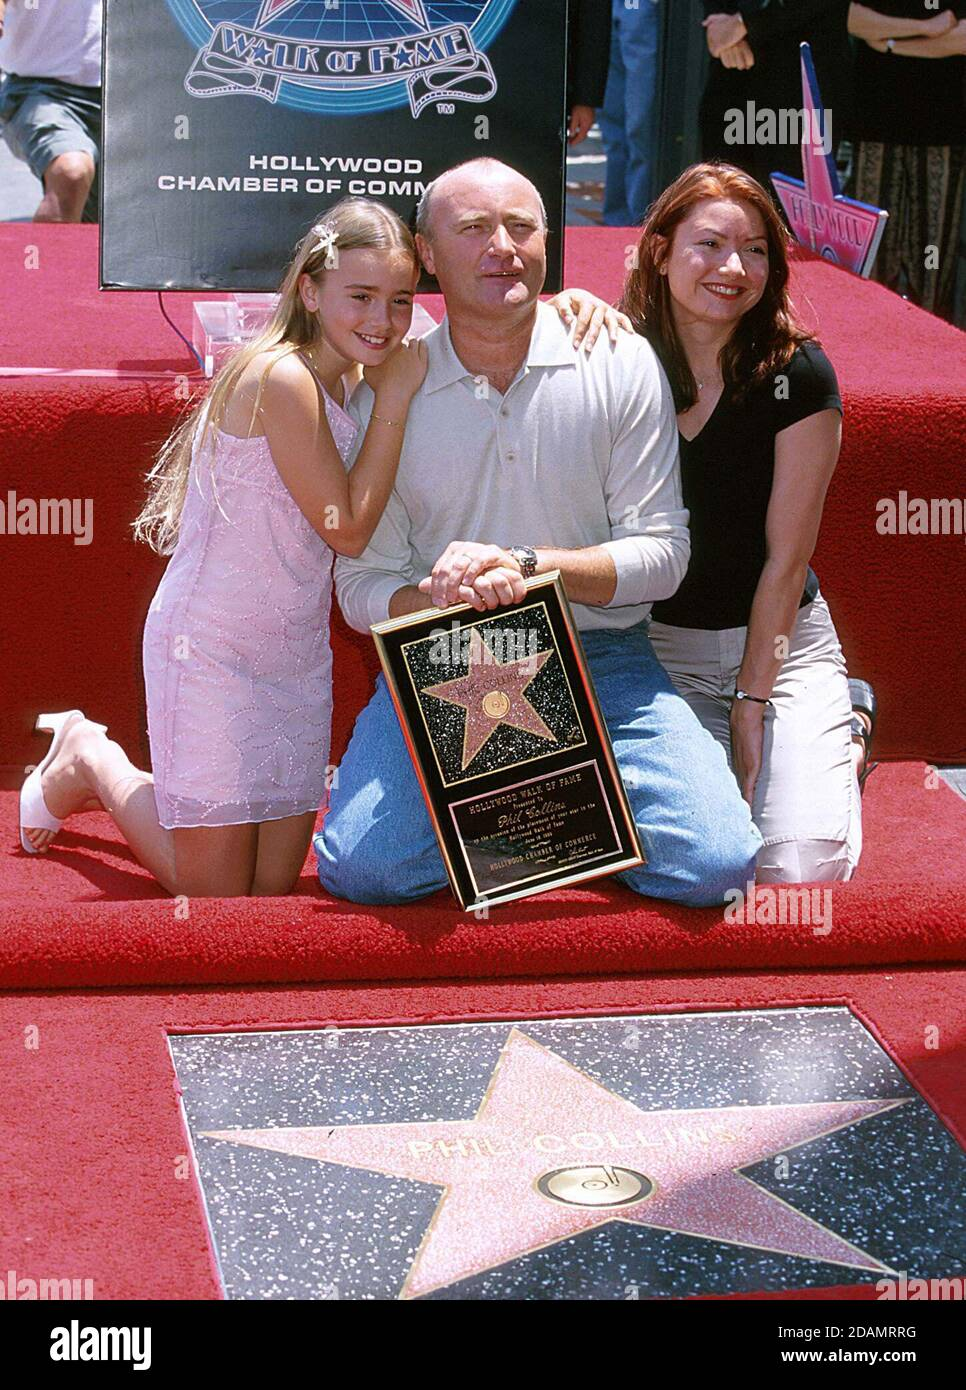 Daughters A Red Carpet Event High Resolution Stock Photography And Images Alamy